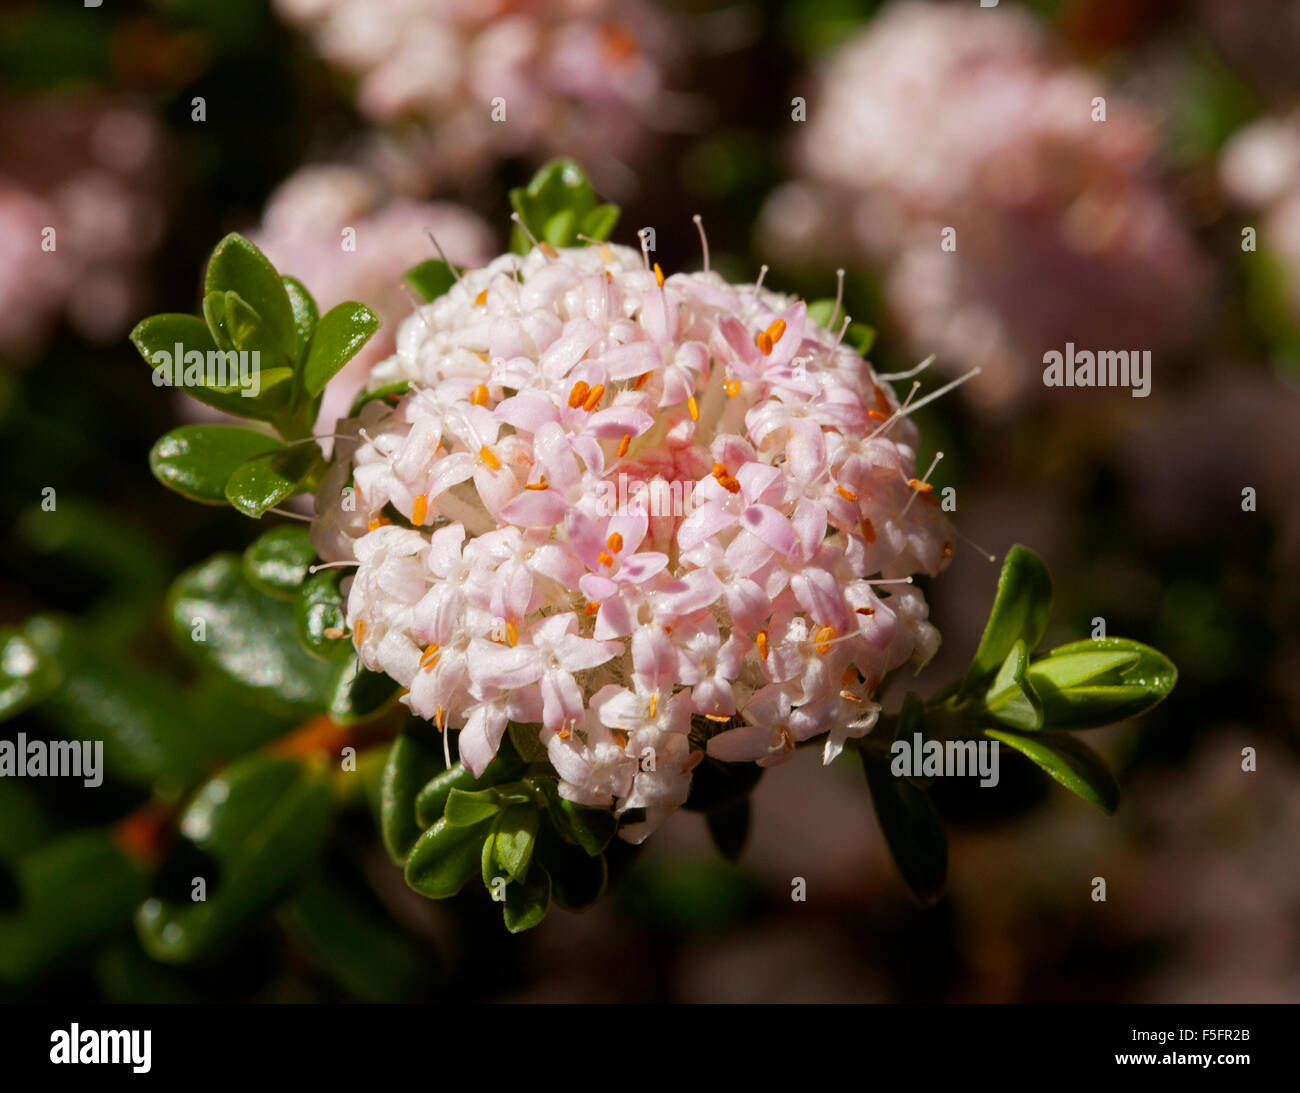 Cluster of small pale pink flowers of australian native shrub cluster of small pale pink flowers of australian native shrub pimelea ferruginea surrounded by dark green leaves dhlflorist Gallery